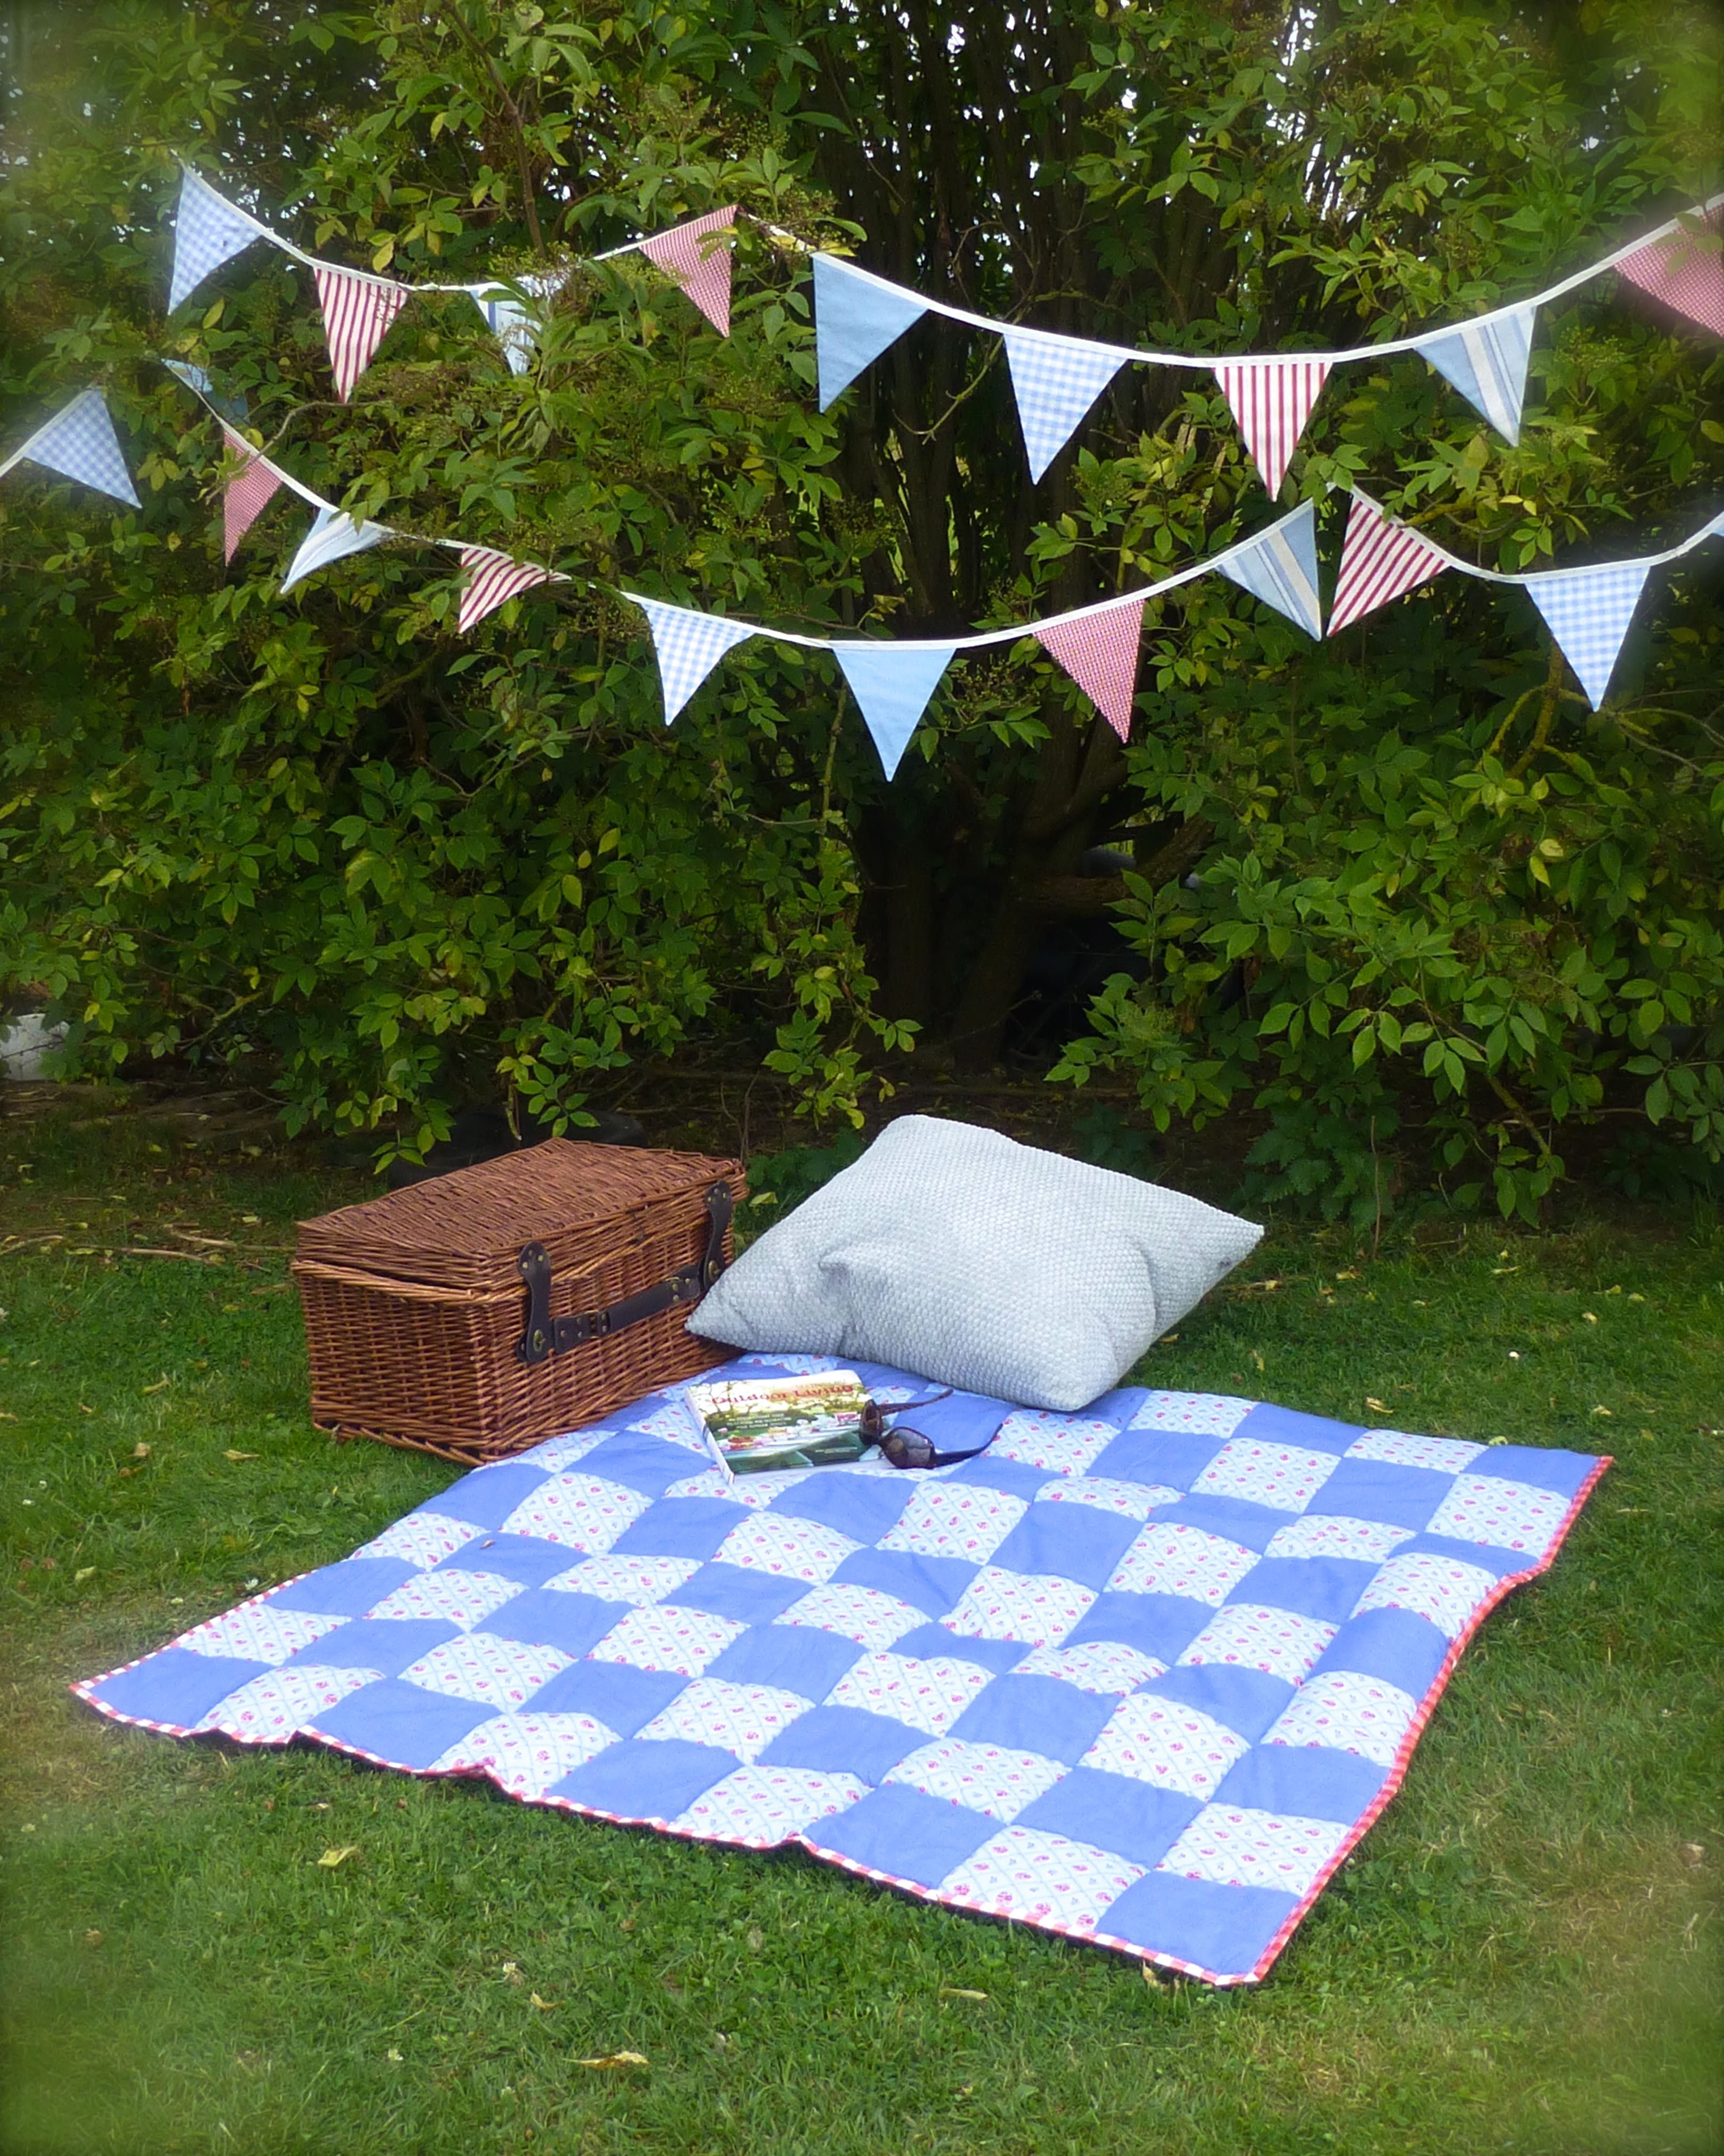 How To Make A Patchwork Picnic Blanket Rug With Waterproof